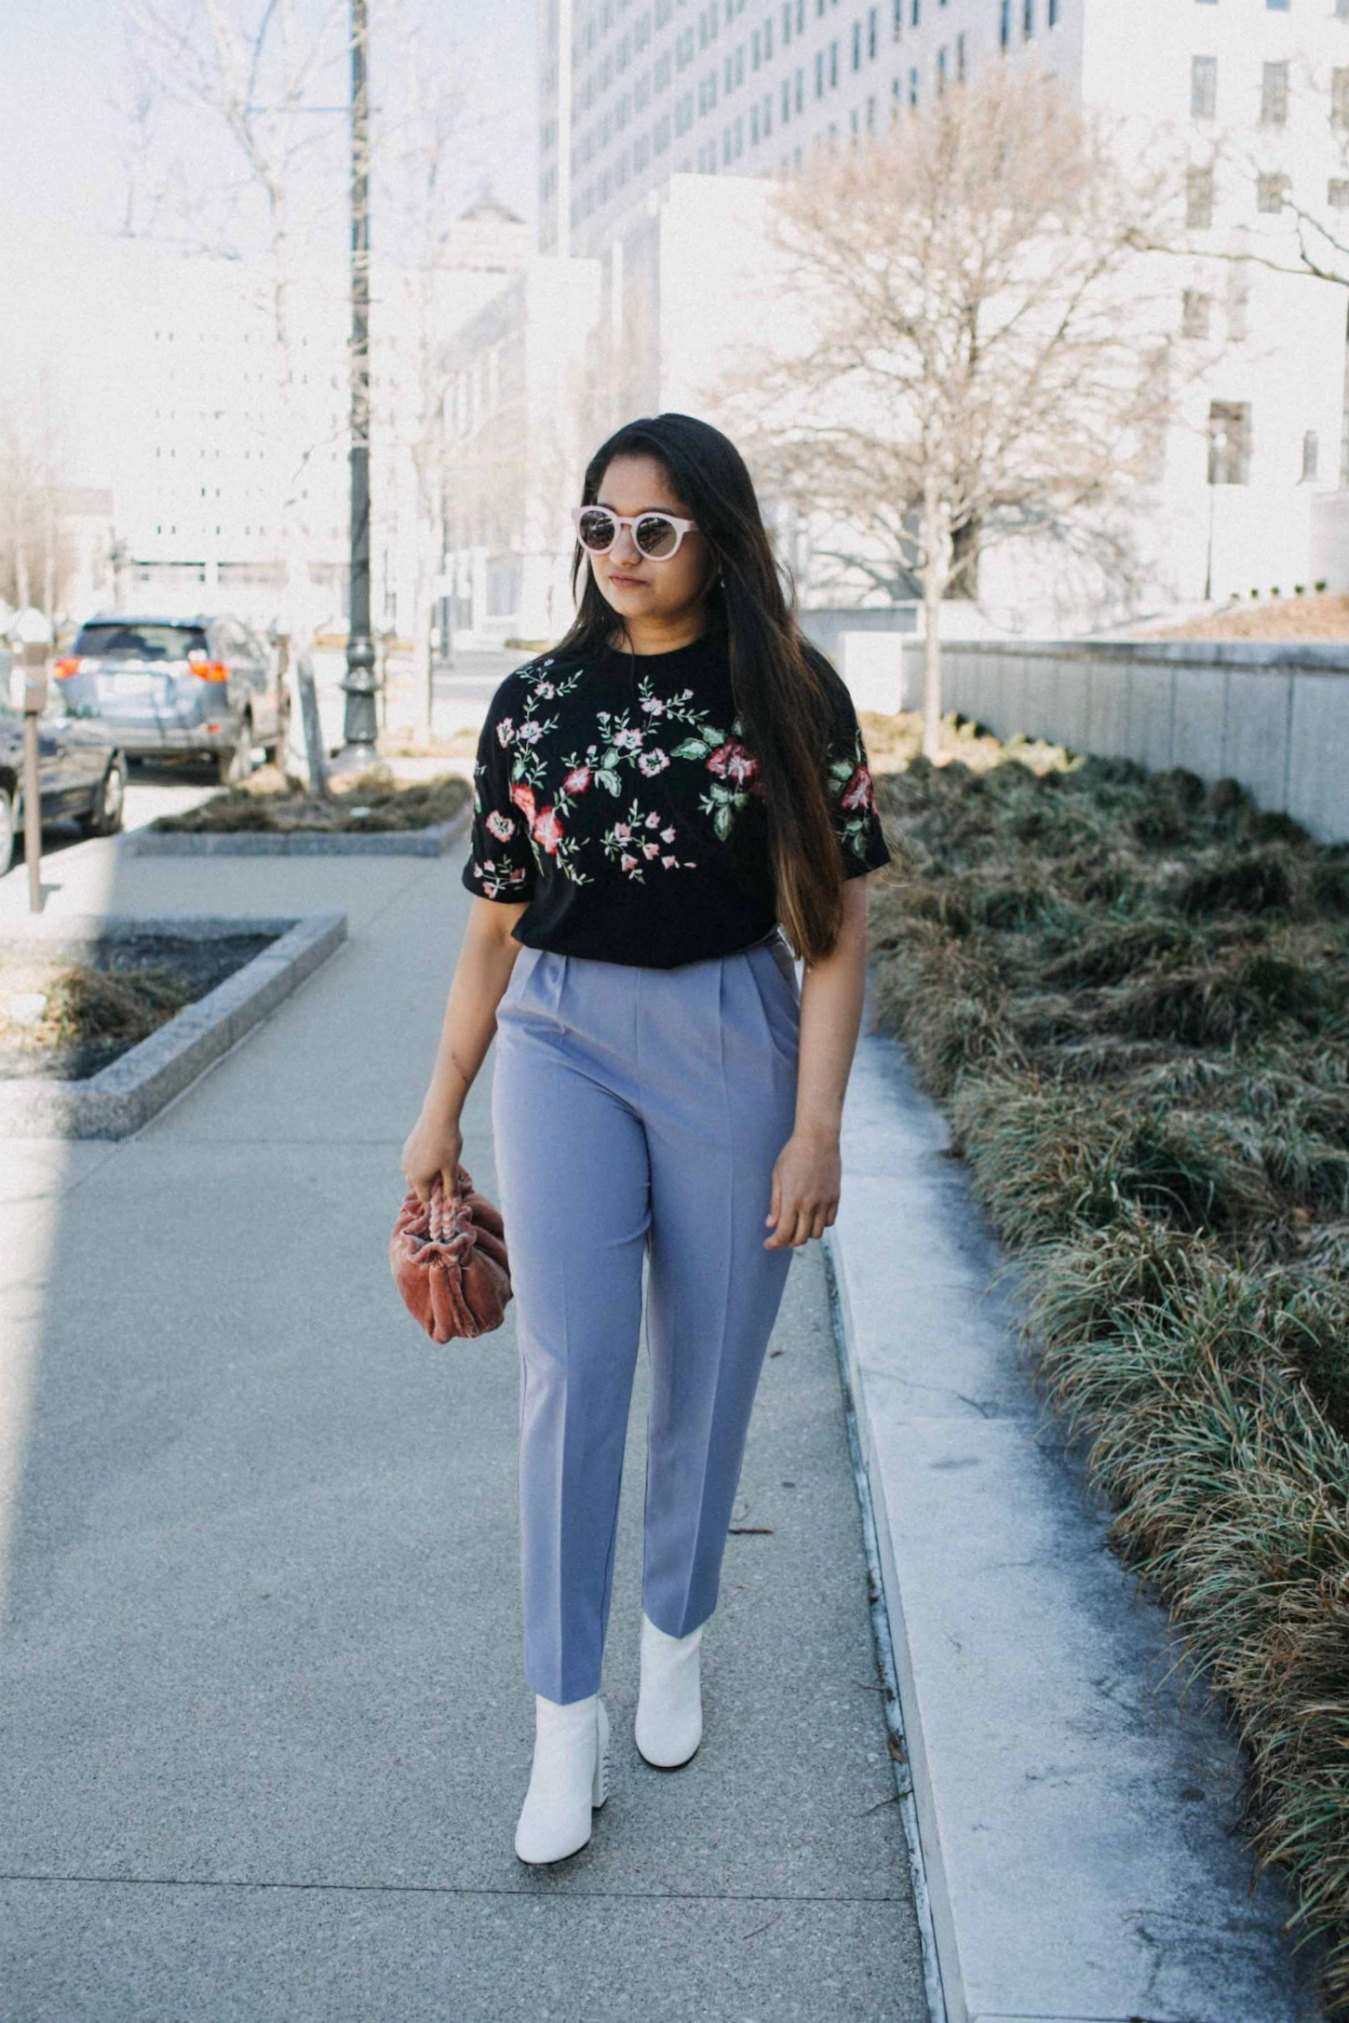 Lifestyle Blog Dreaming Loud sharing 20 Spring Casual chic and trendy outfits - Spring Outfit Ideas featured by popular Ohio modest fashion blogger, Dreaming Loud